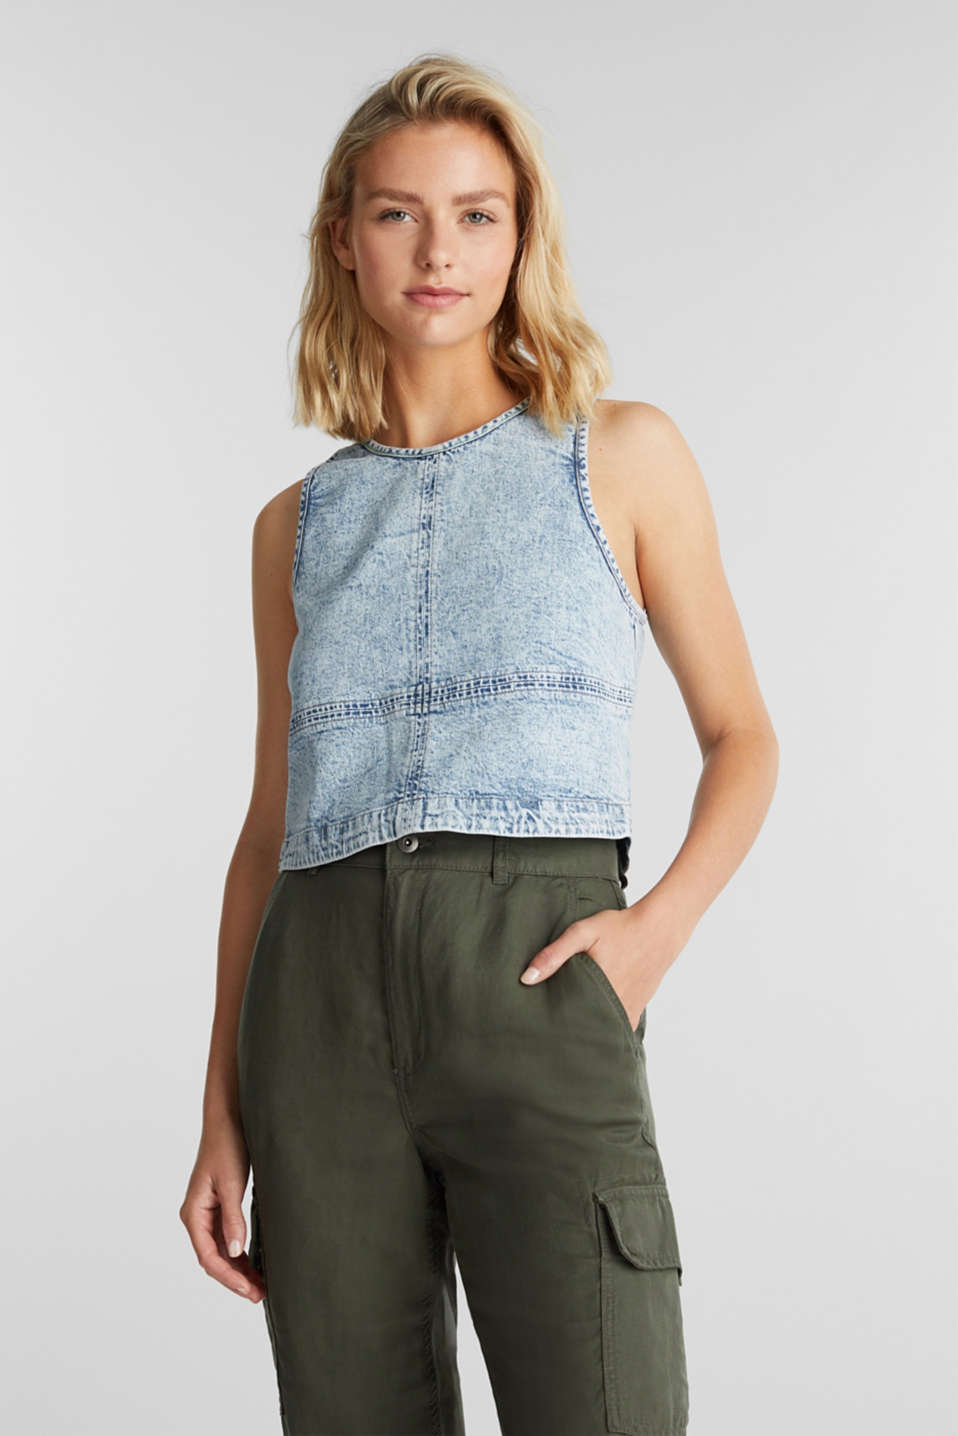 edc - Cropped blouse top made of denim